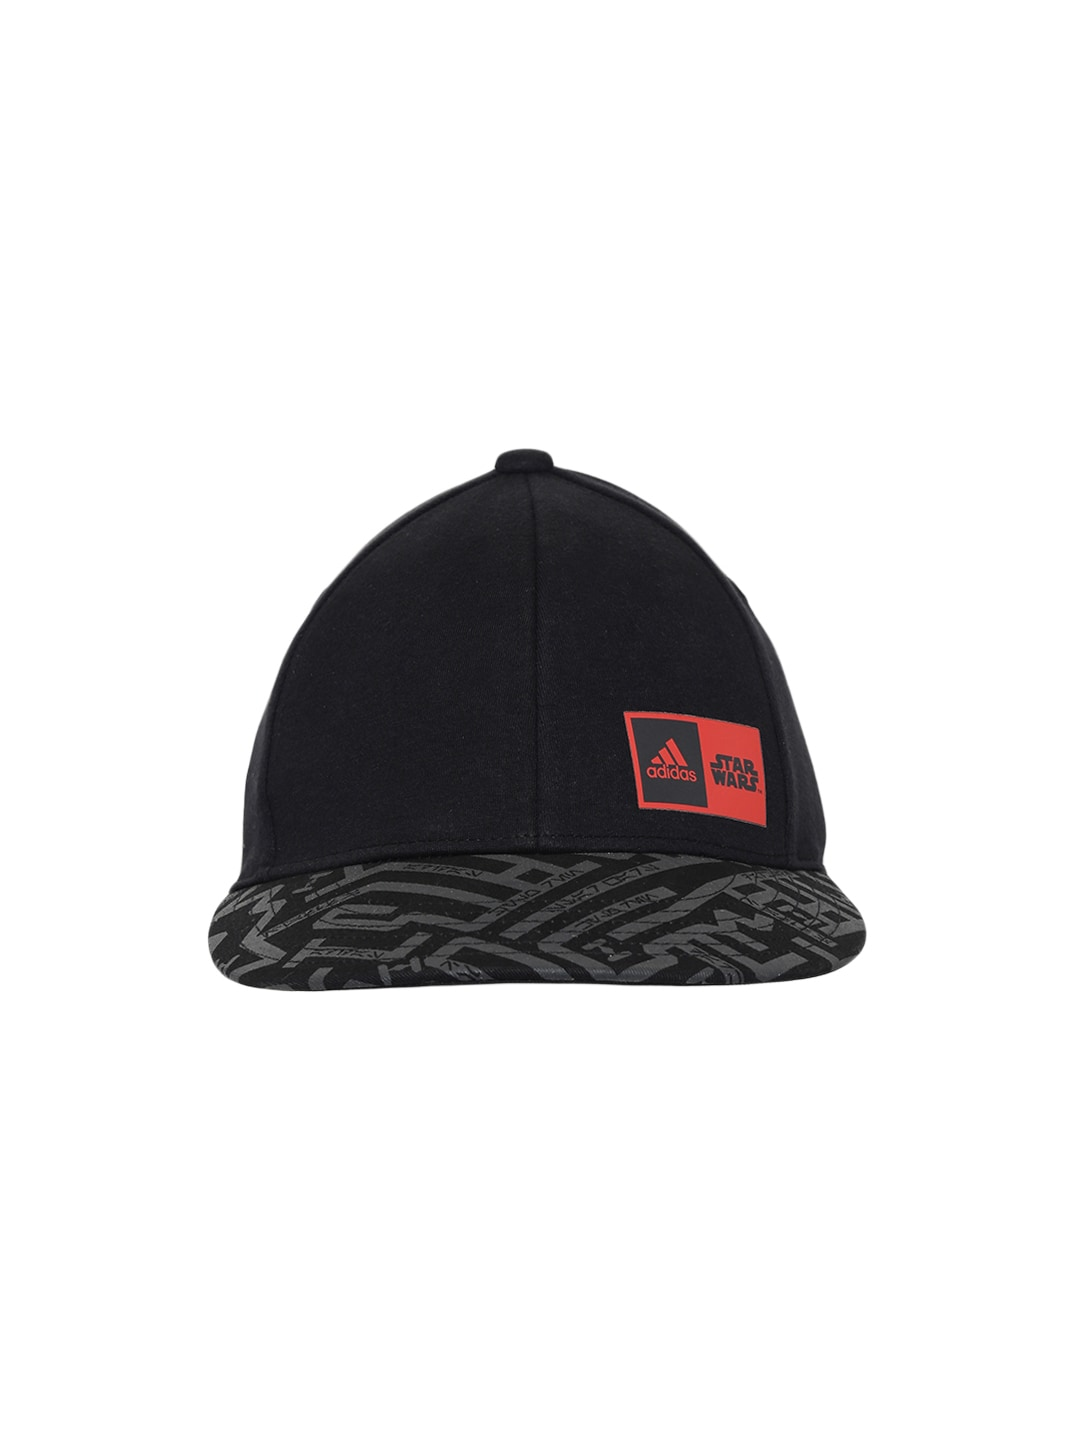 Caps For Boys- Buy Boys Caps online in India 493e270ecf9